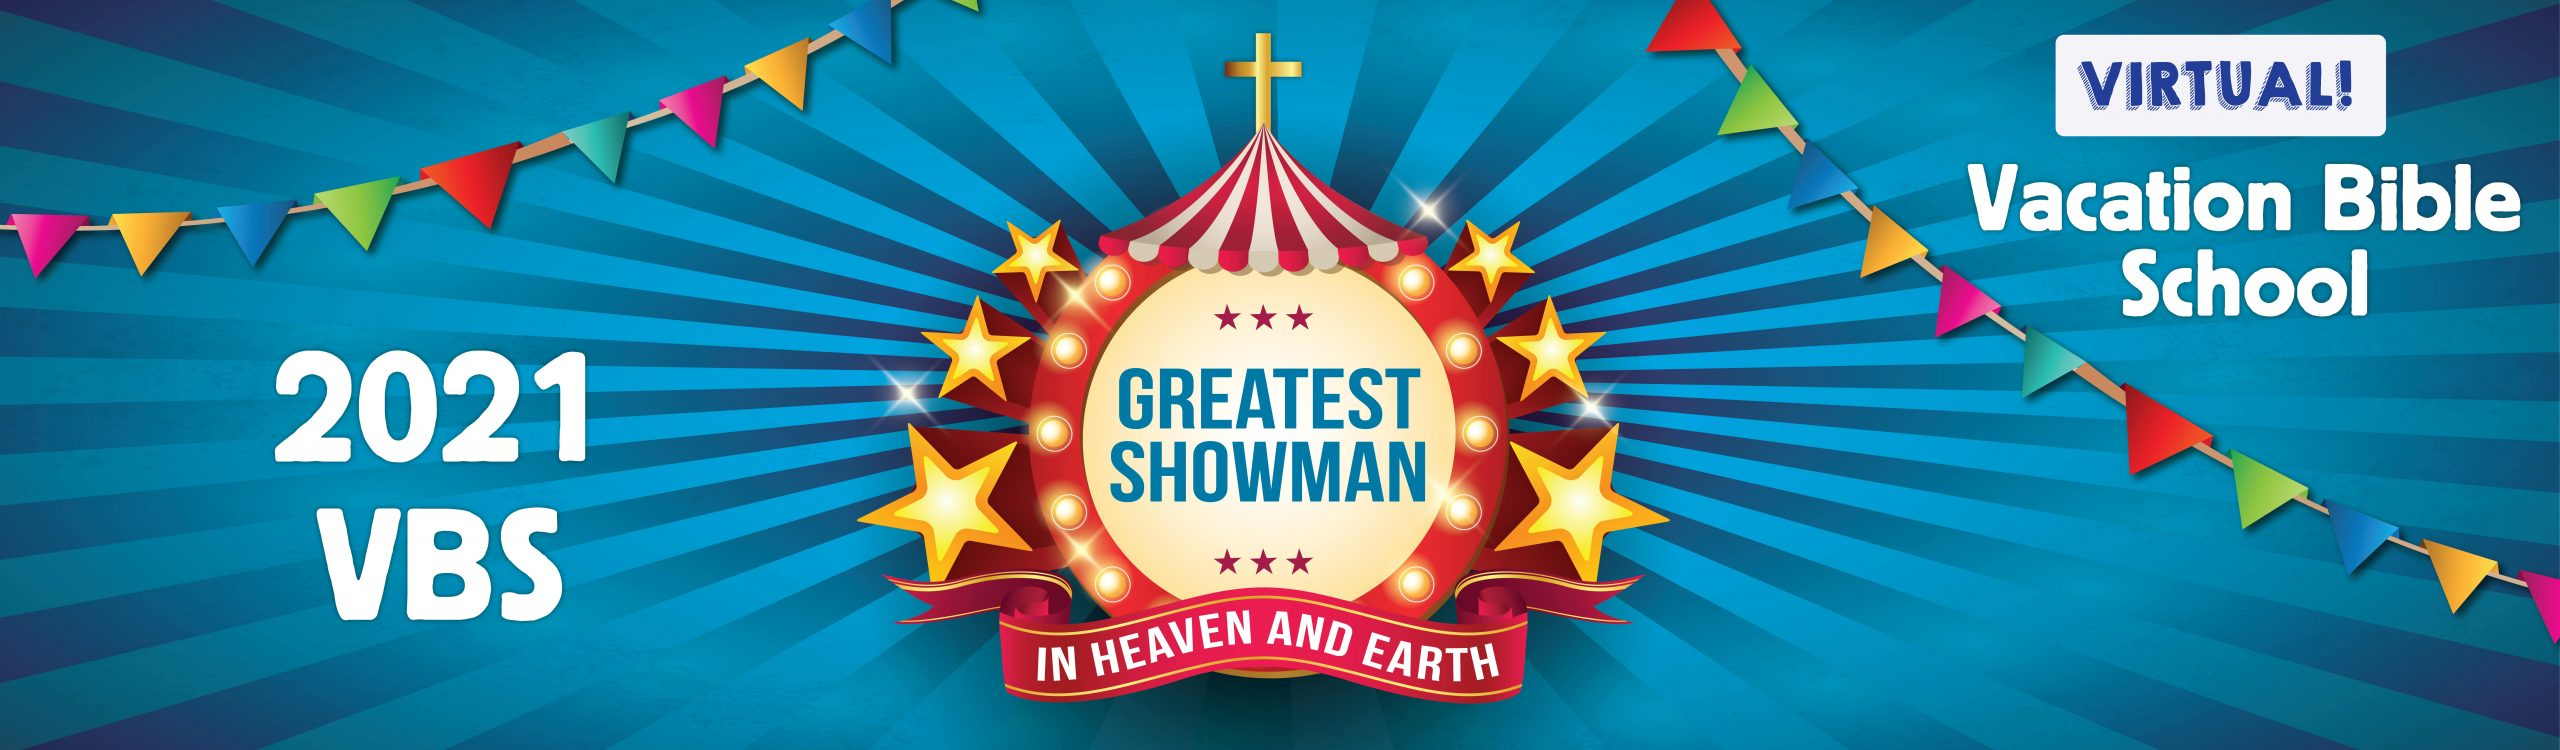 Virtual VBS 2021 - Greatest Showman in Heaven and Earth